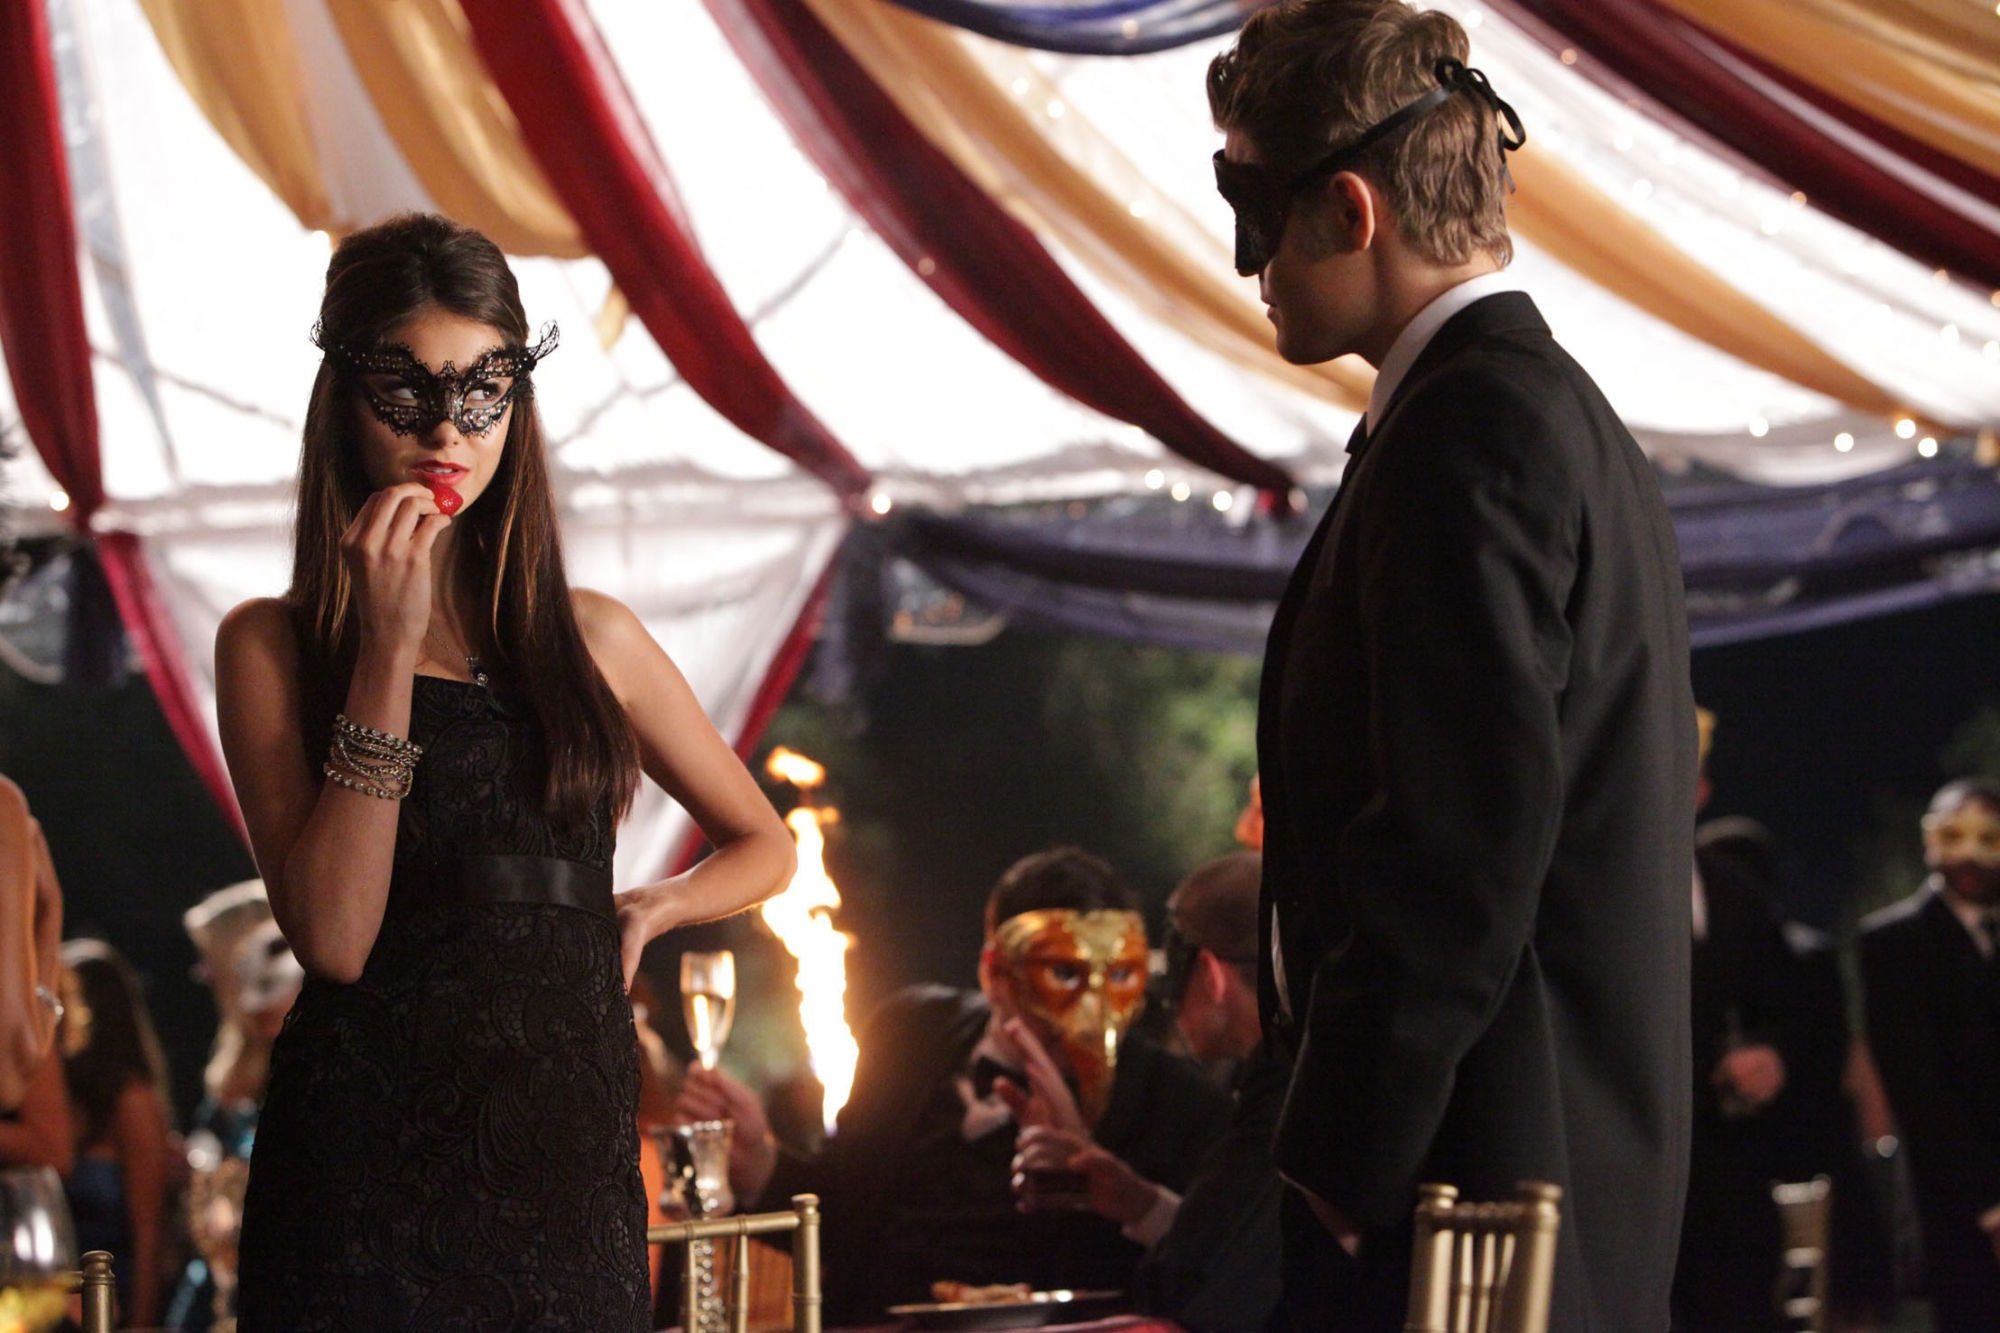 Katherine Pierce And Black Venetian Mask 1539458